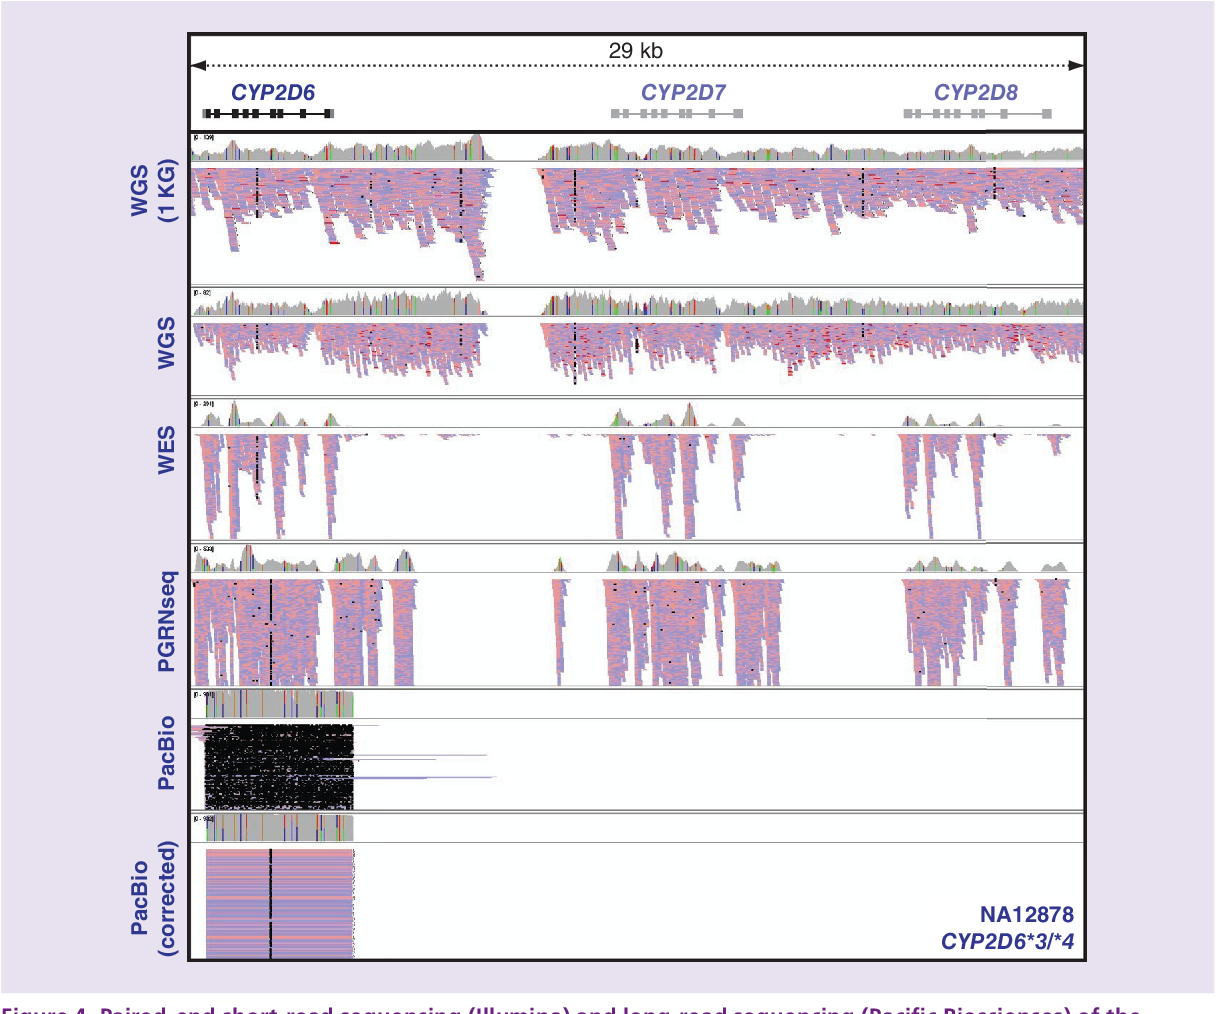 Figure 4 from Sequencing the CYP2D6 gene: from variant